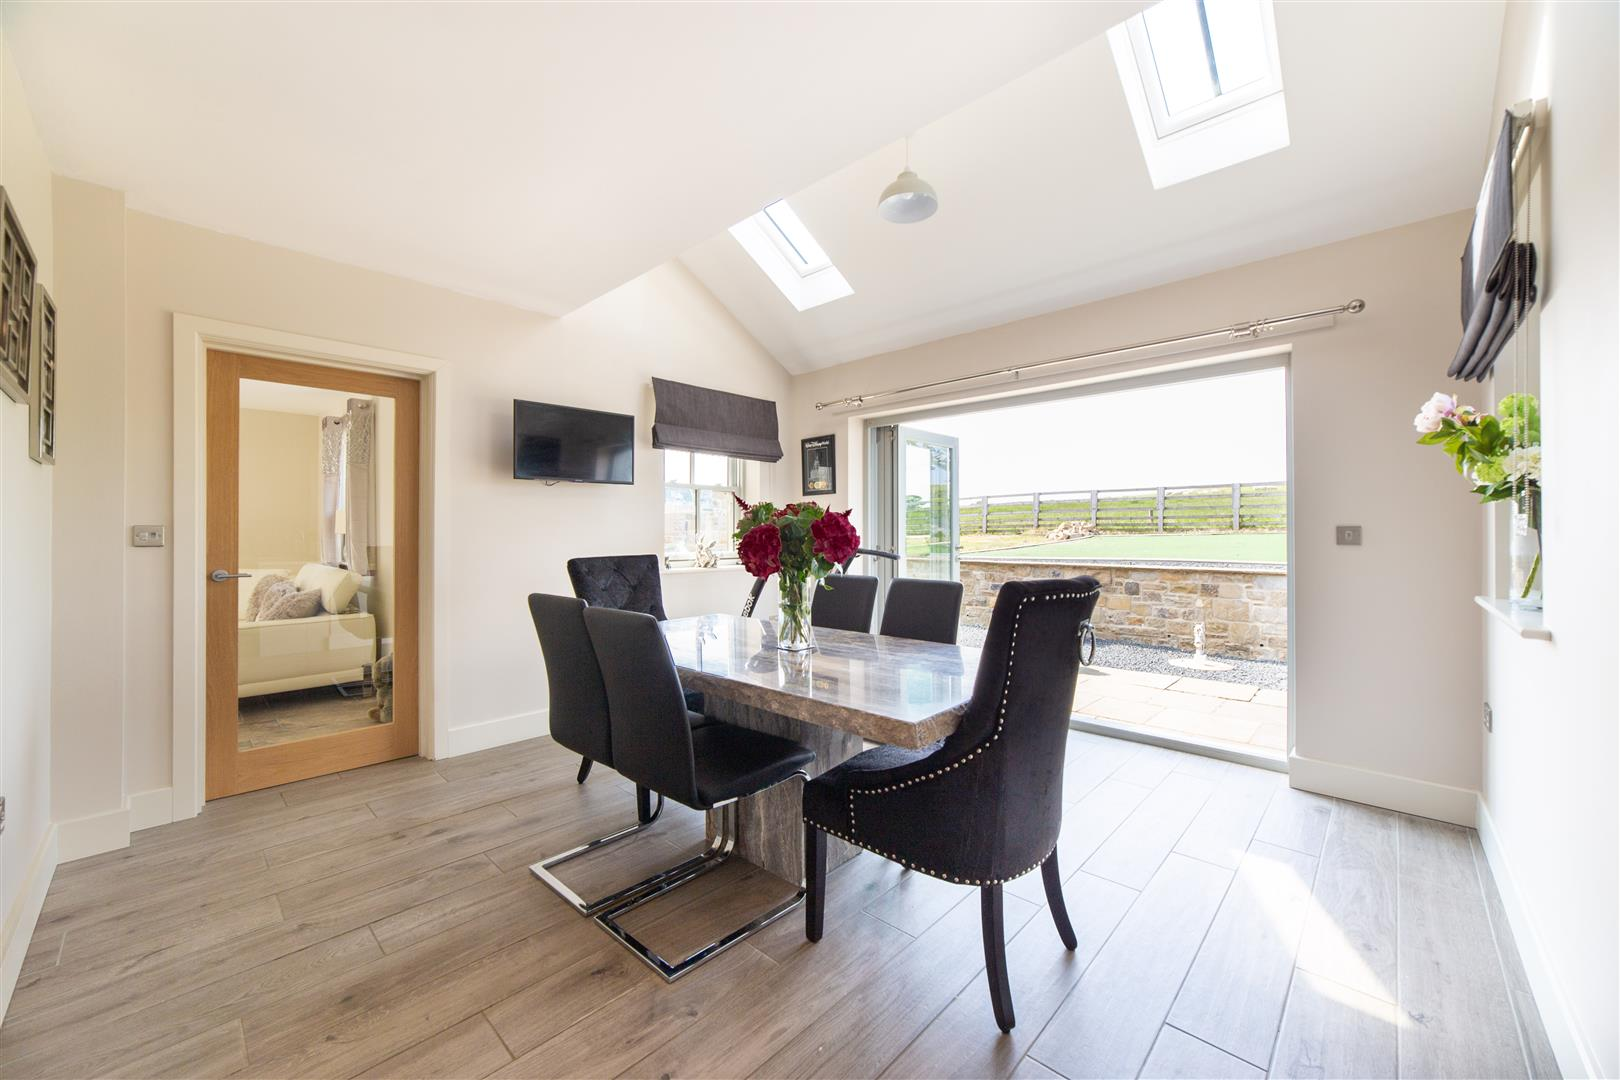 4 bed detached house for sale, Hexham  - Property Image 5